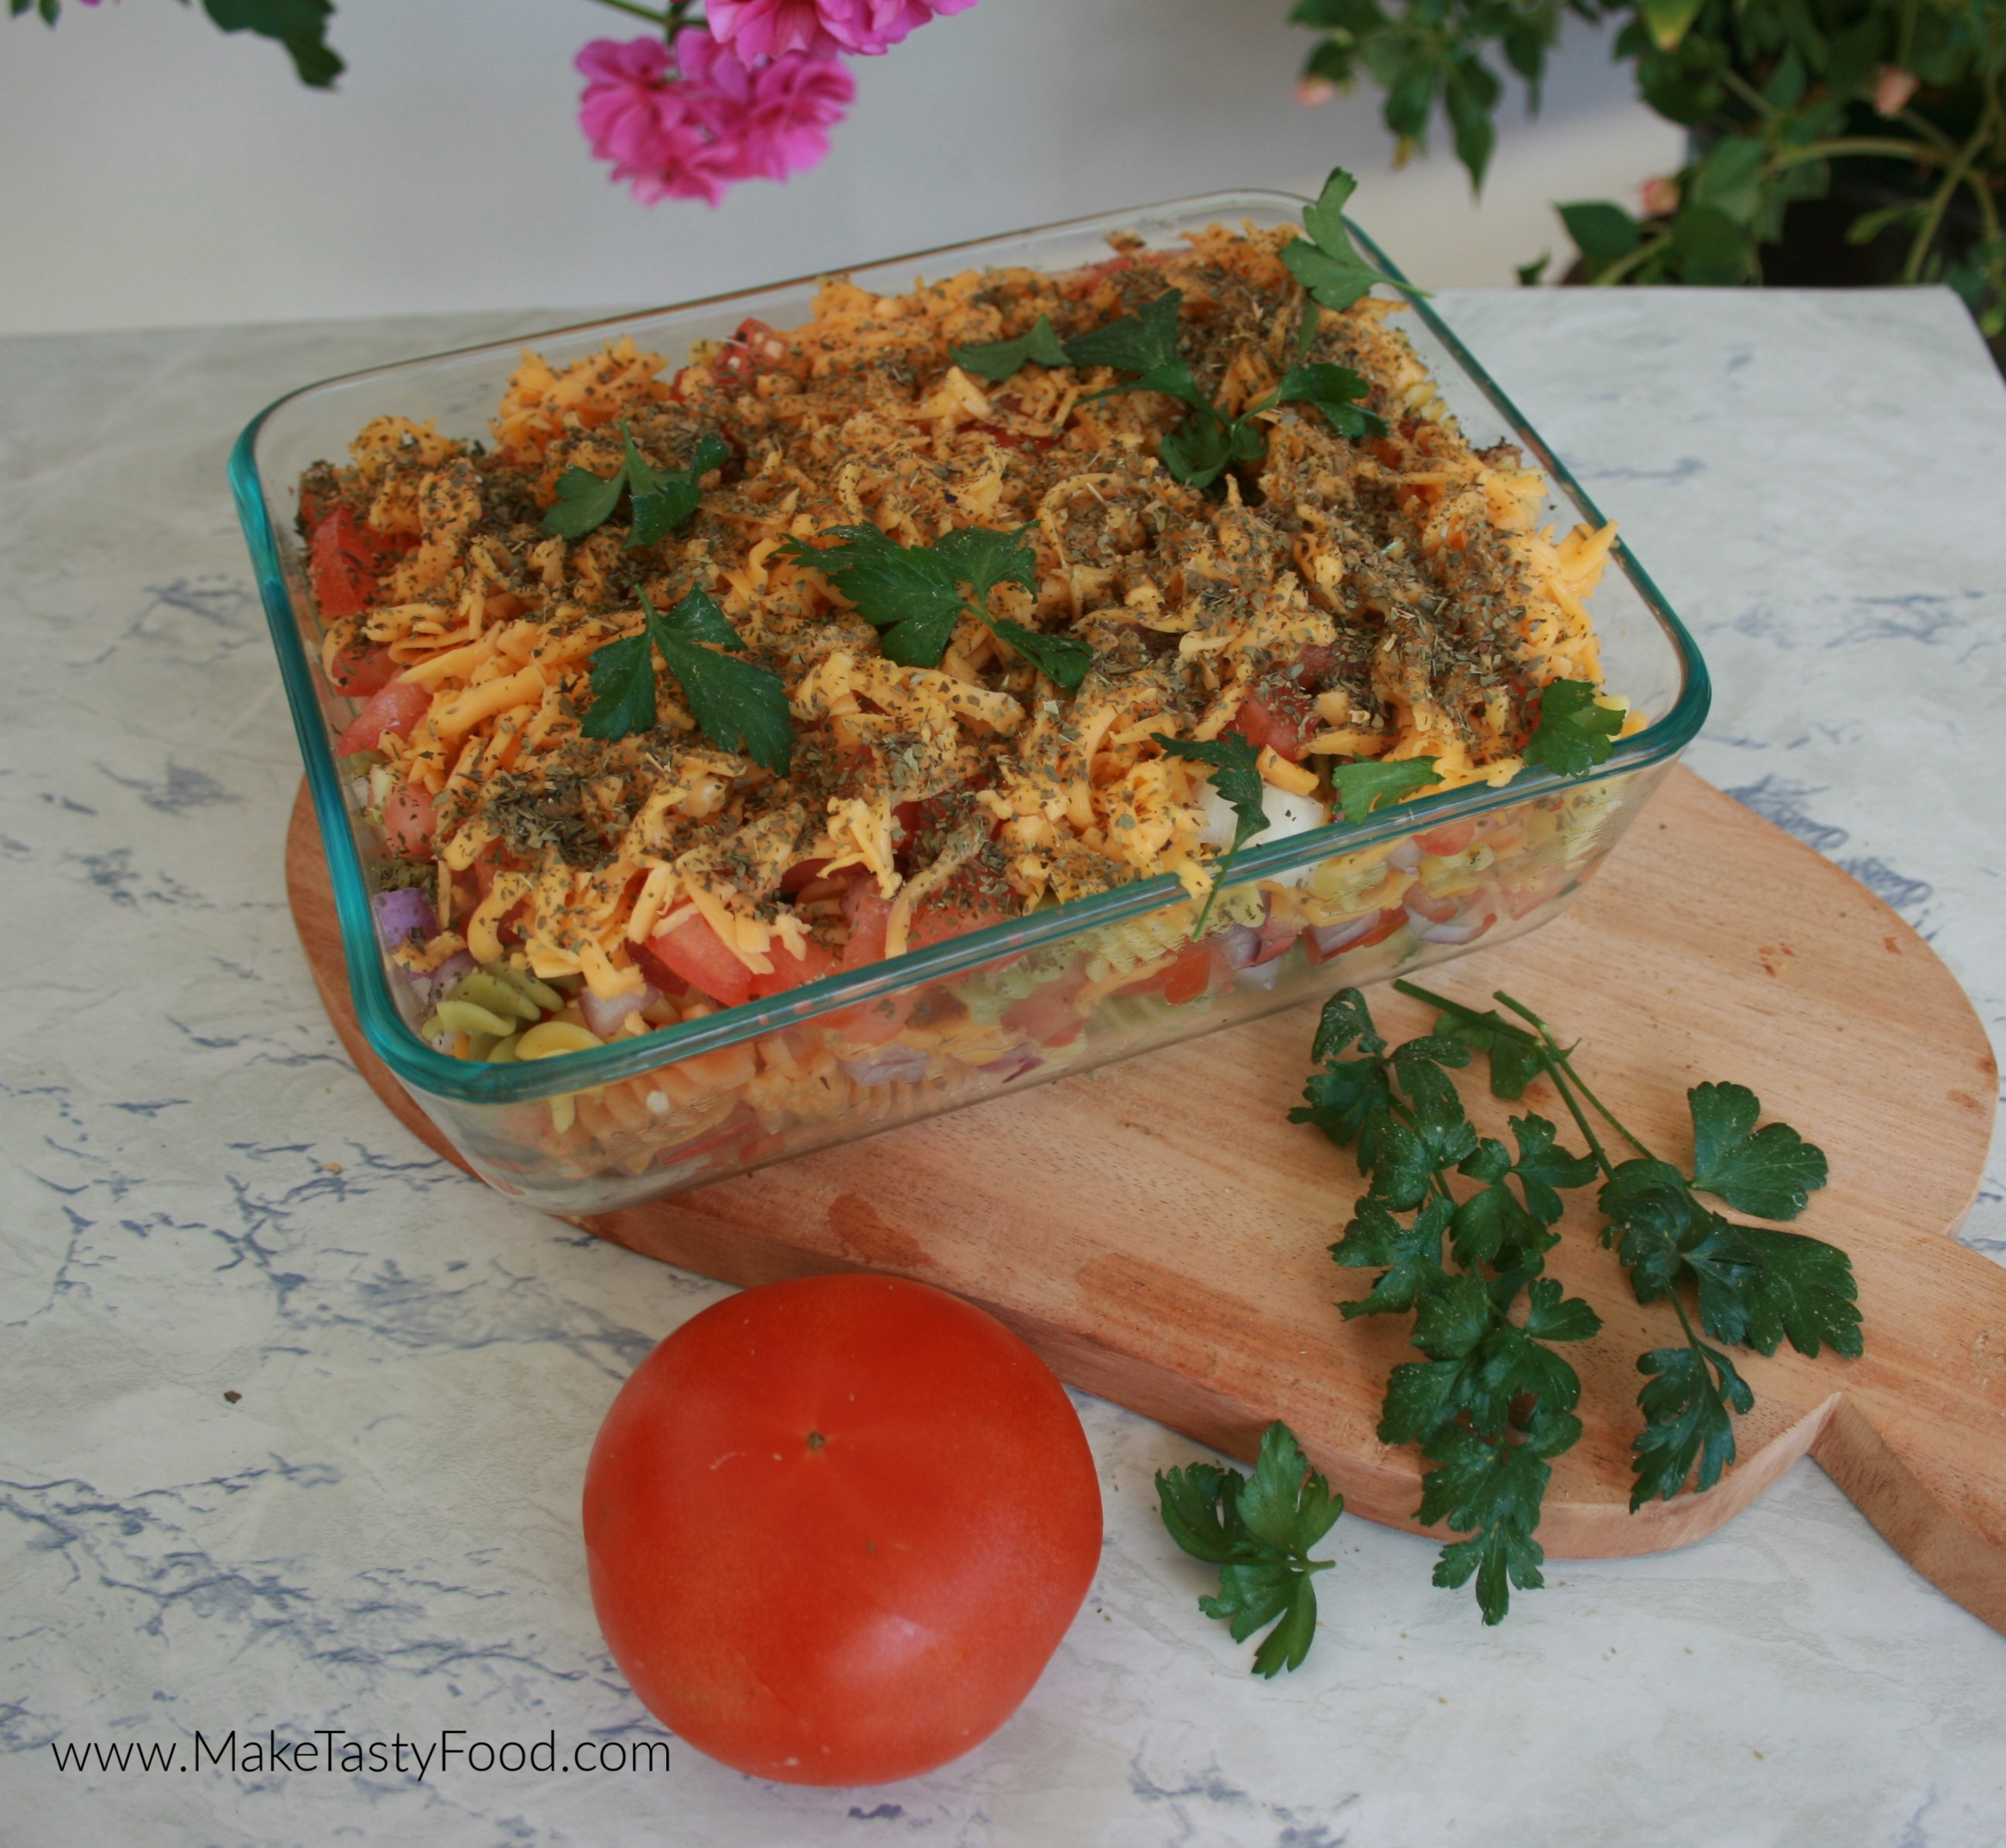 The dish layered with pasta and tomato and cheese ready to have the egg and milk poured in.